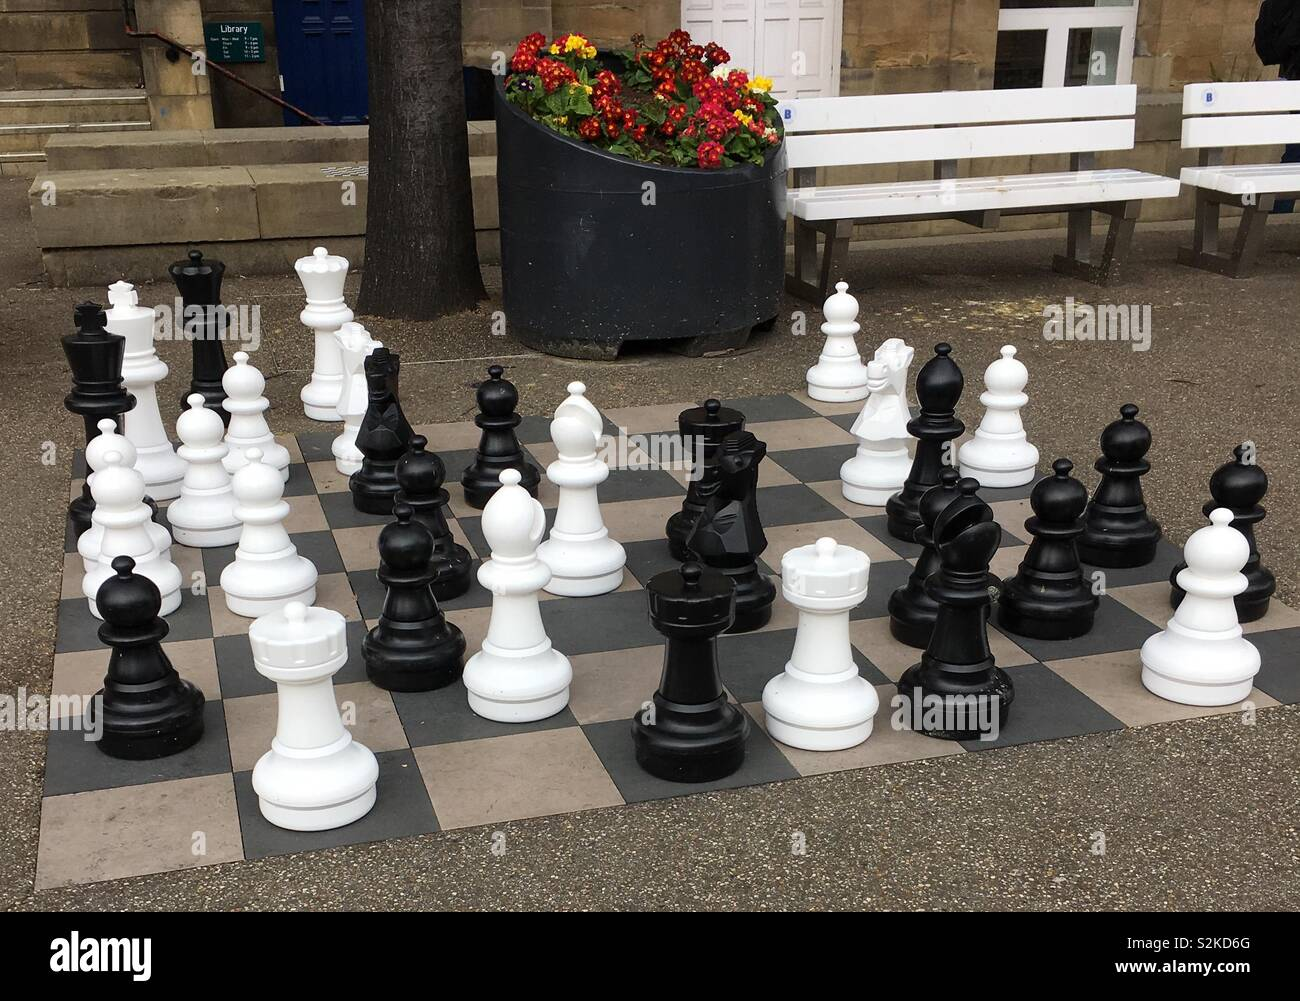 Large outdoor chess game in Victoria Gardens, Leeds, UK, close to the main thoroughfare, The Headrow, and near the Art Gallery, Library and Town Hall. The game is popular in summer when many watch. Stock Photo